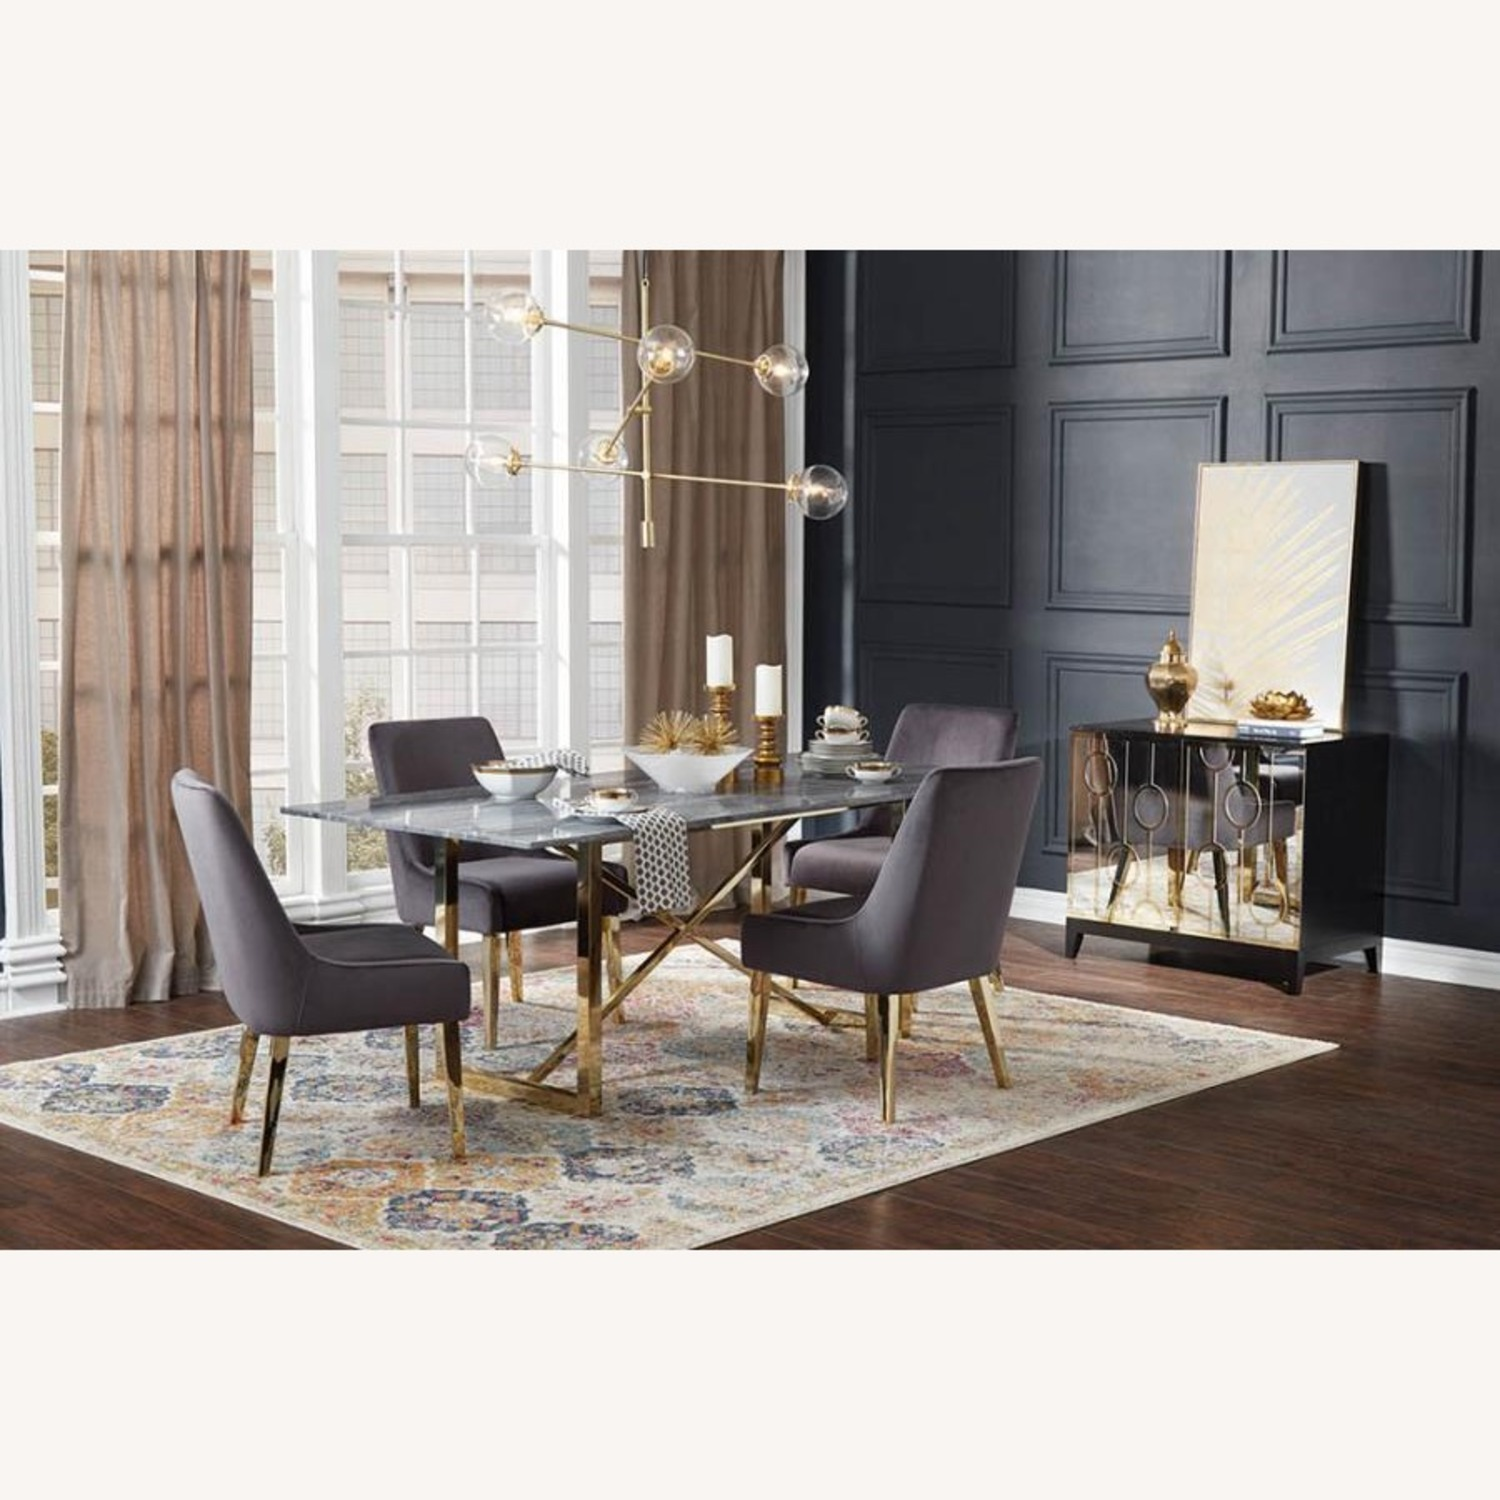 Dining Chair Upholstered In Grey Fabric - image-3